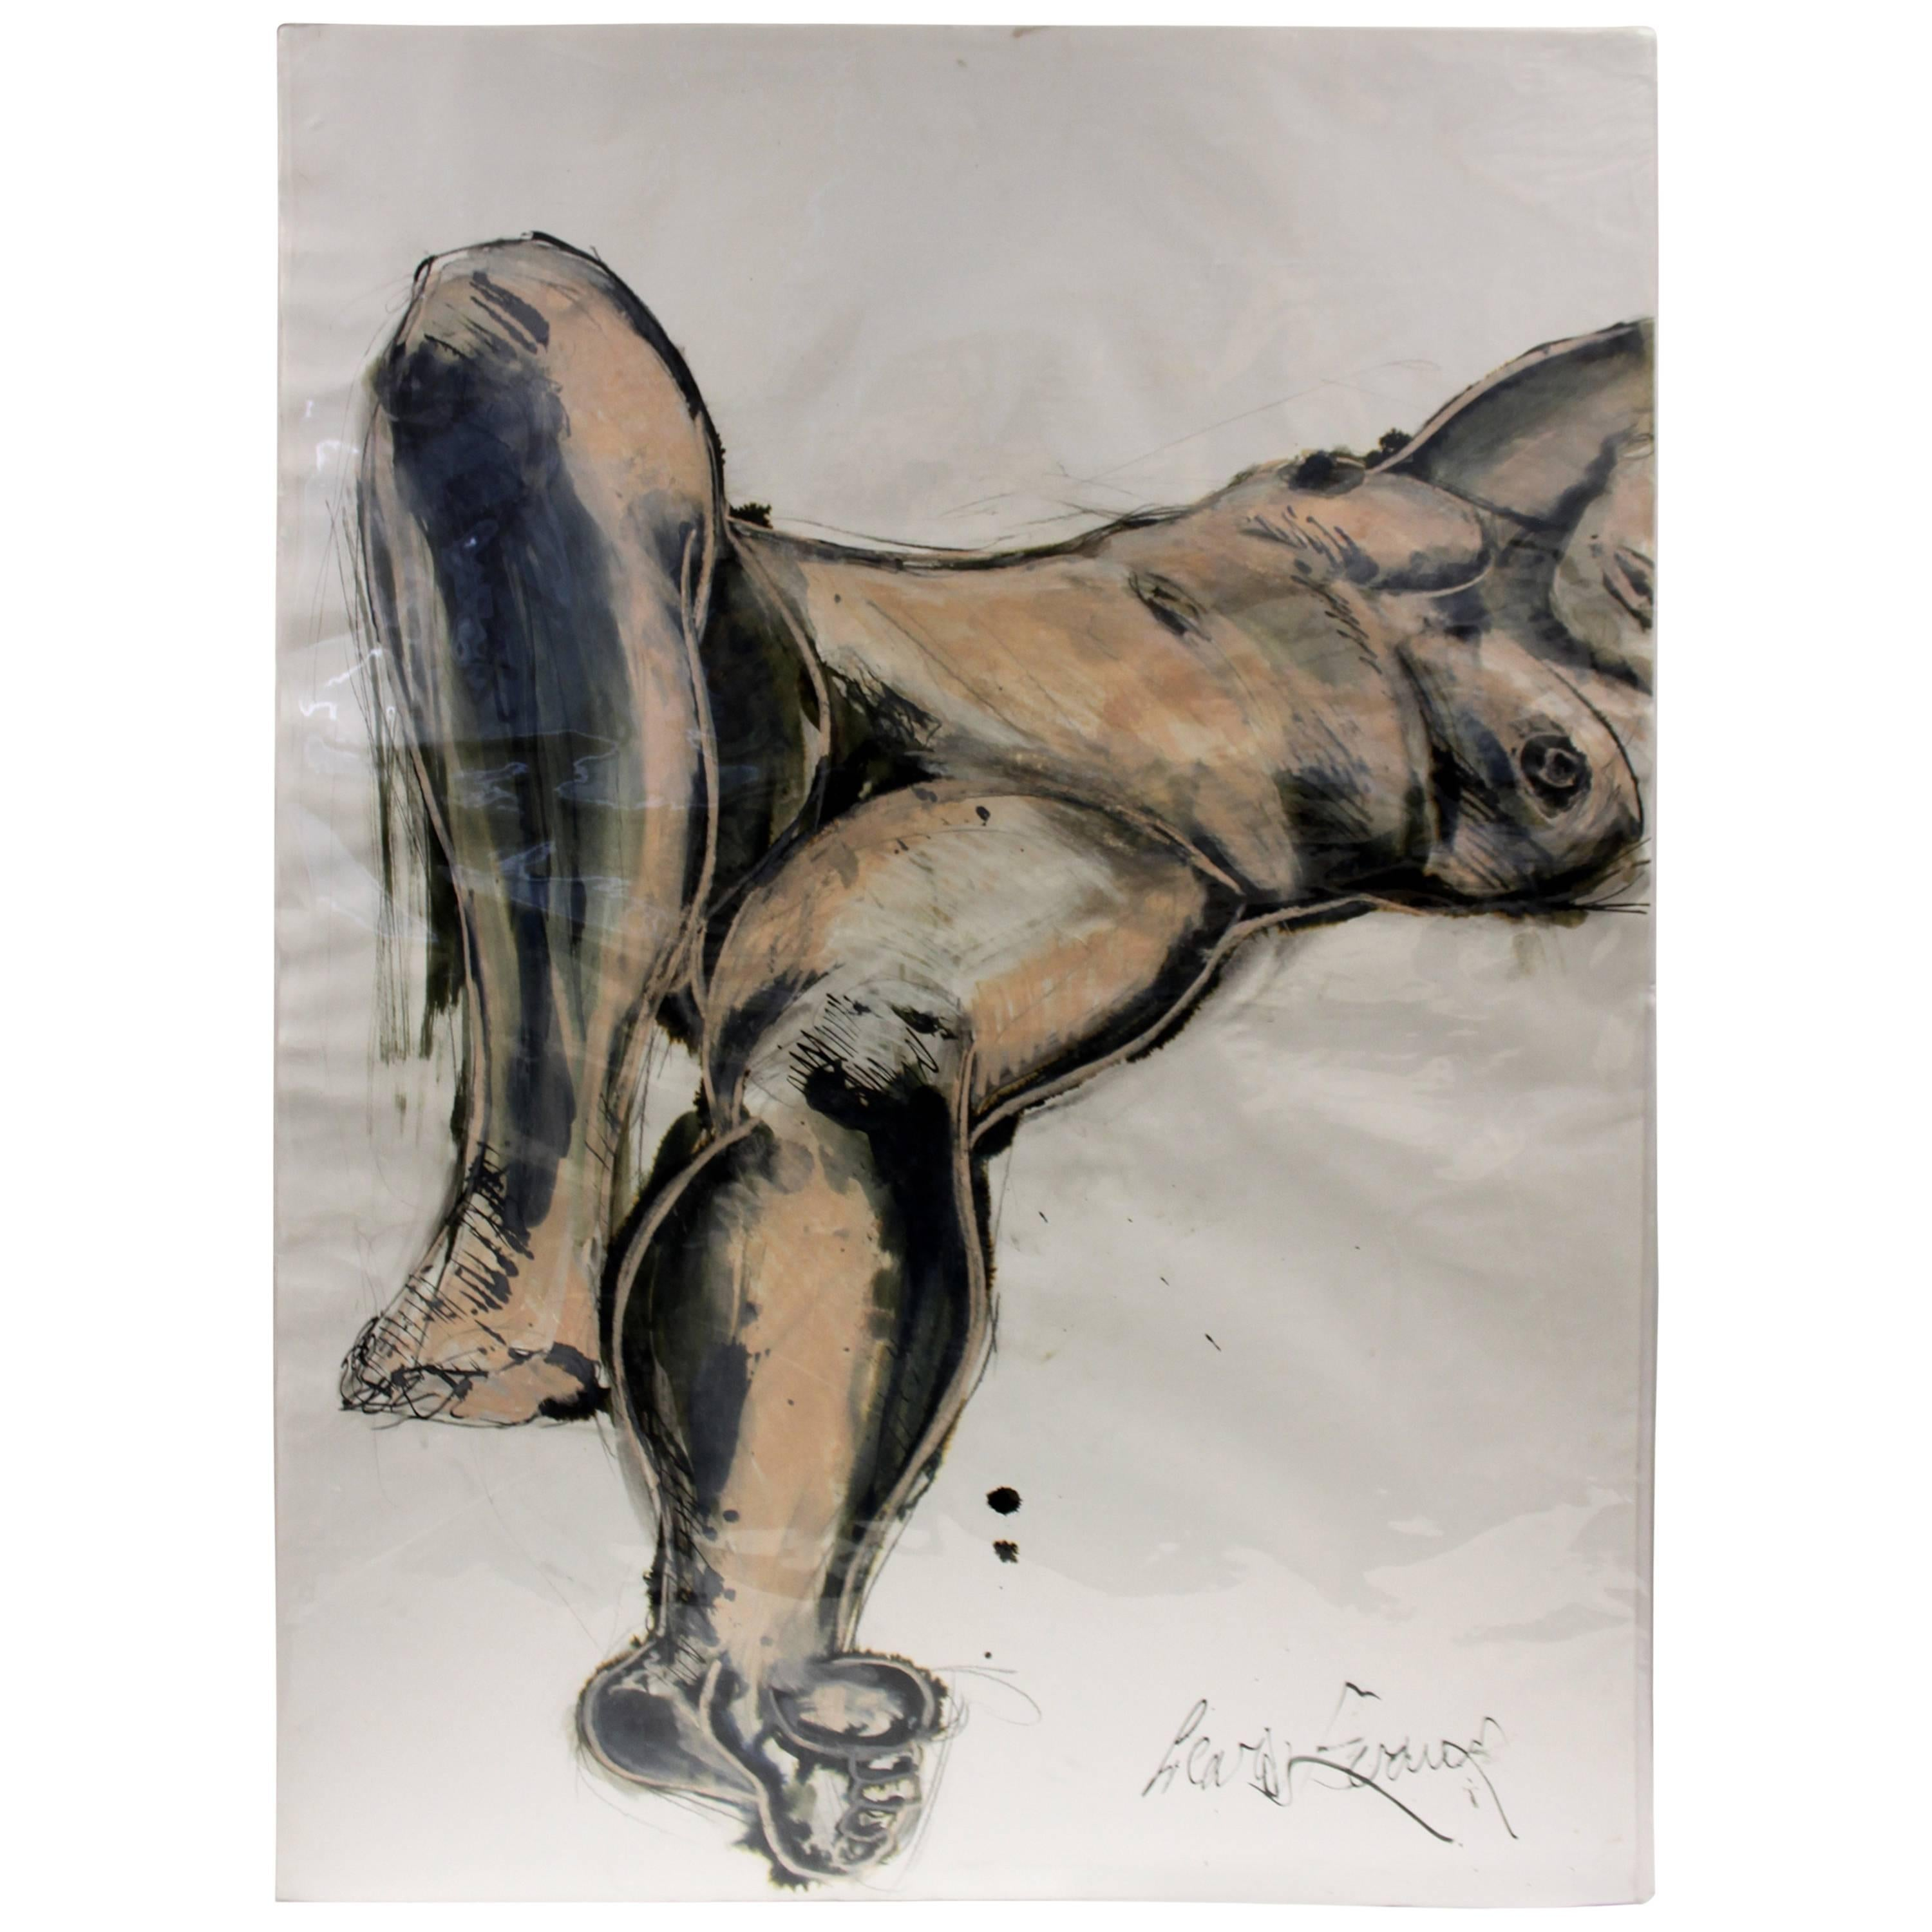 Watercolor and Ink Erotica Scene Painting, Signed by Lewis Evans, circa 1990s